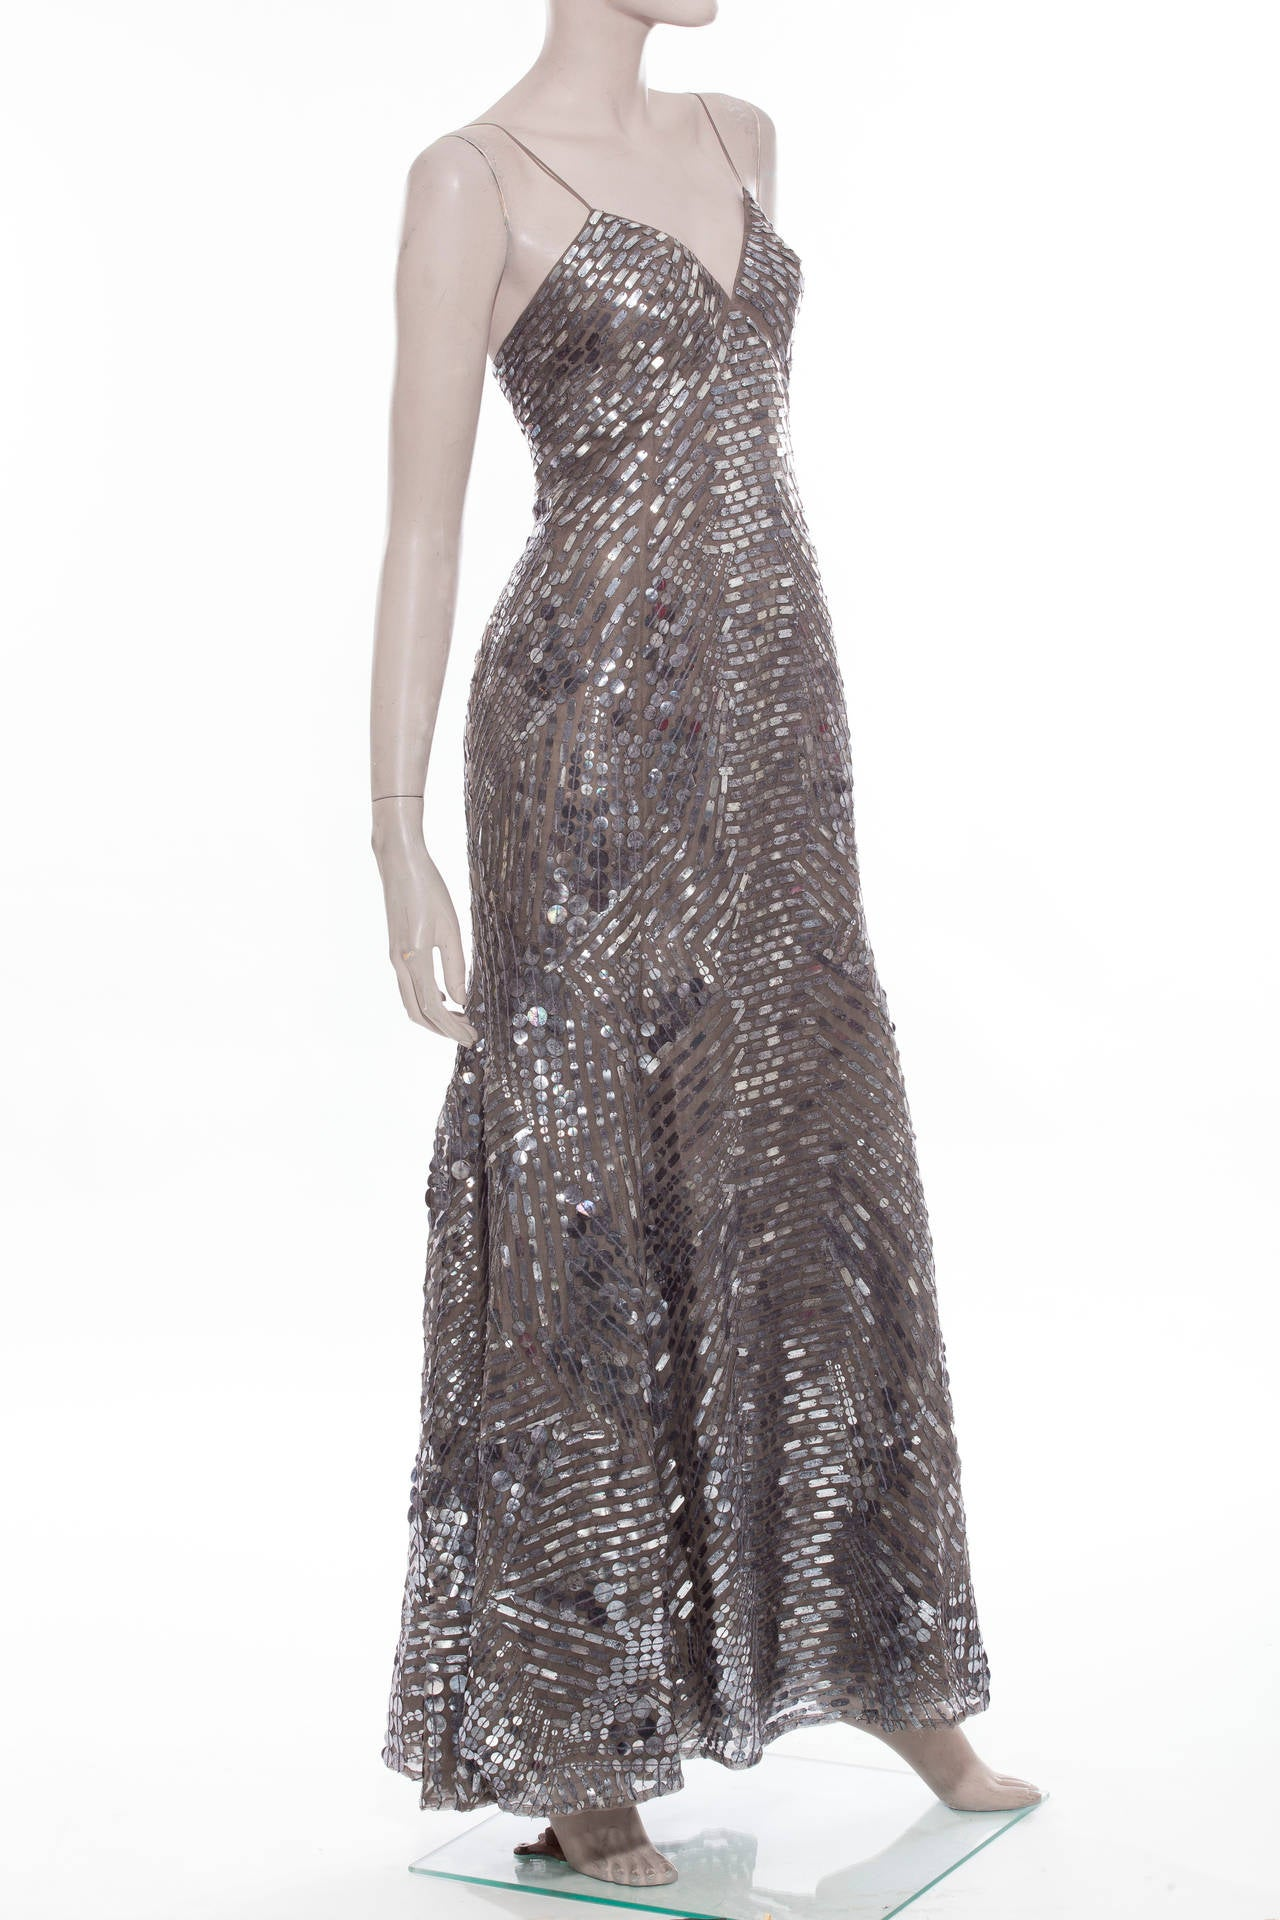 Oscar de la Renta, Autumn-Winter 2007 sleeveless silk evening dress with pewter embellishment throughout, V-neckline, invisible back zip closure and fully lined in silk.